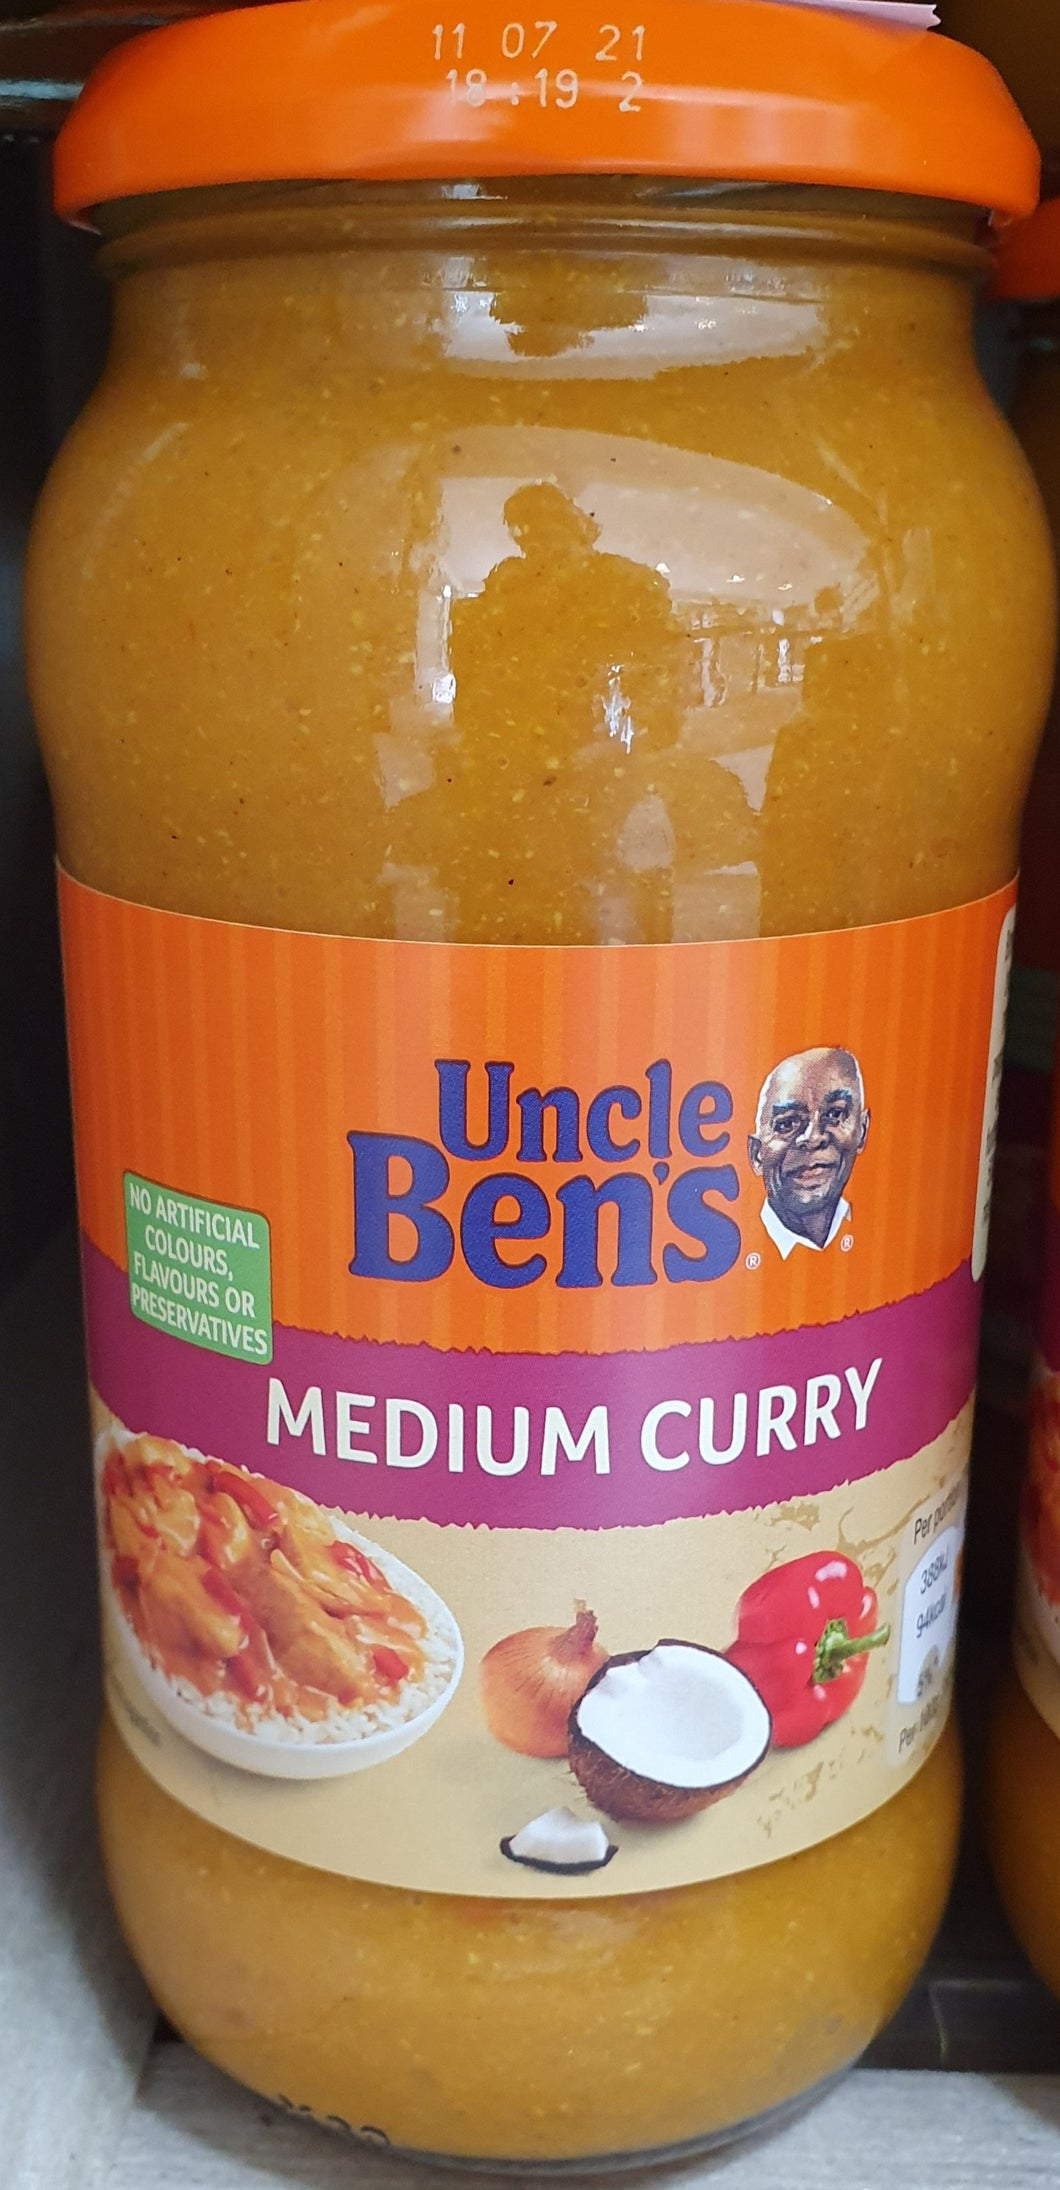 Uncle Bens sauces Medium curry 450g